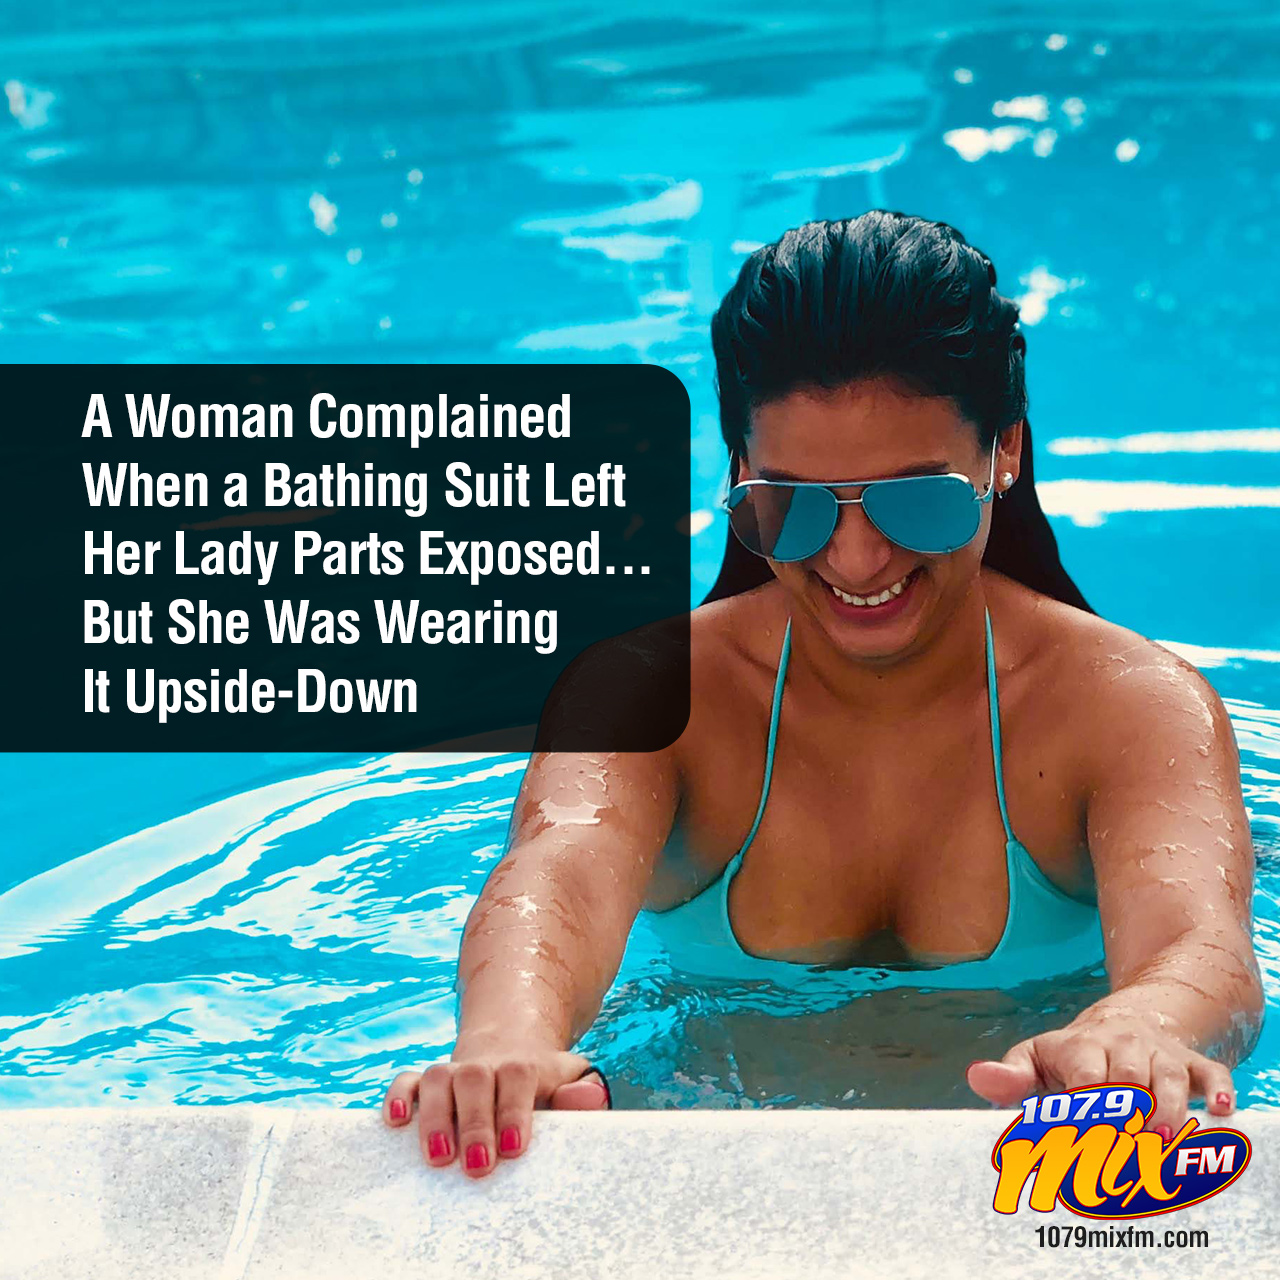 A Woman Complained When a Bathing Suit Left Her Lady Parts Exposed . . . But She Was Wearing It Upside-Down